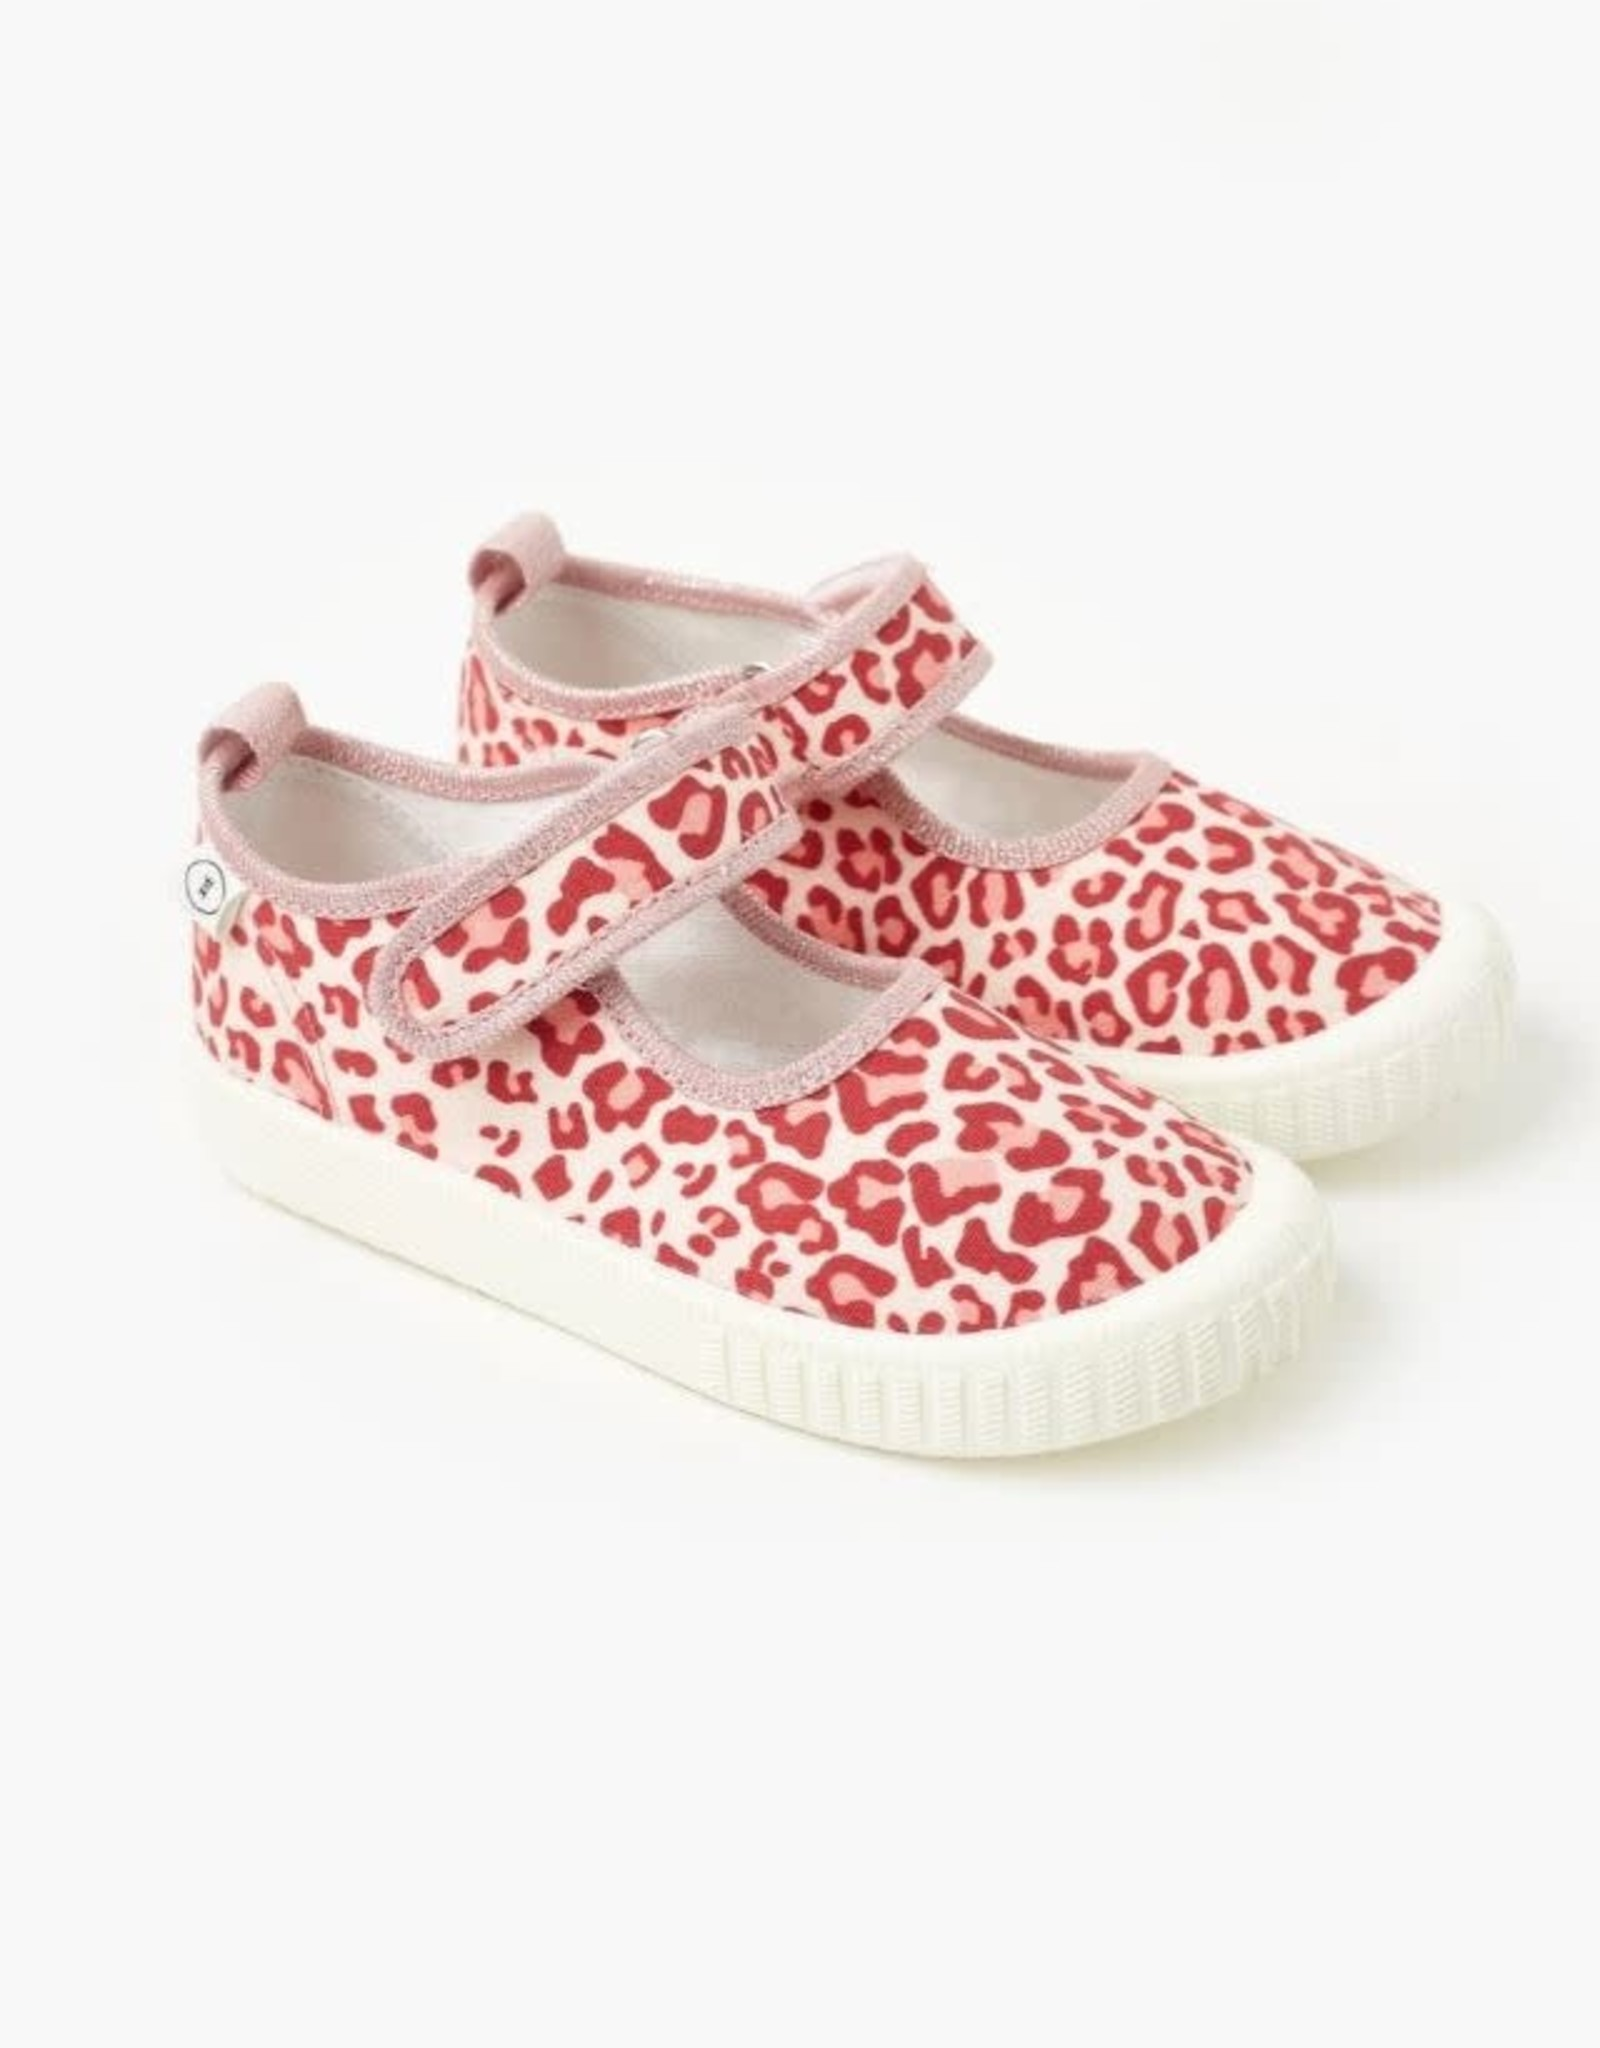 WALNUT Girls Canvas Shoes - Assorted Patterns